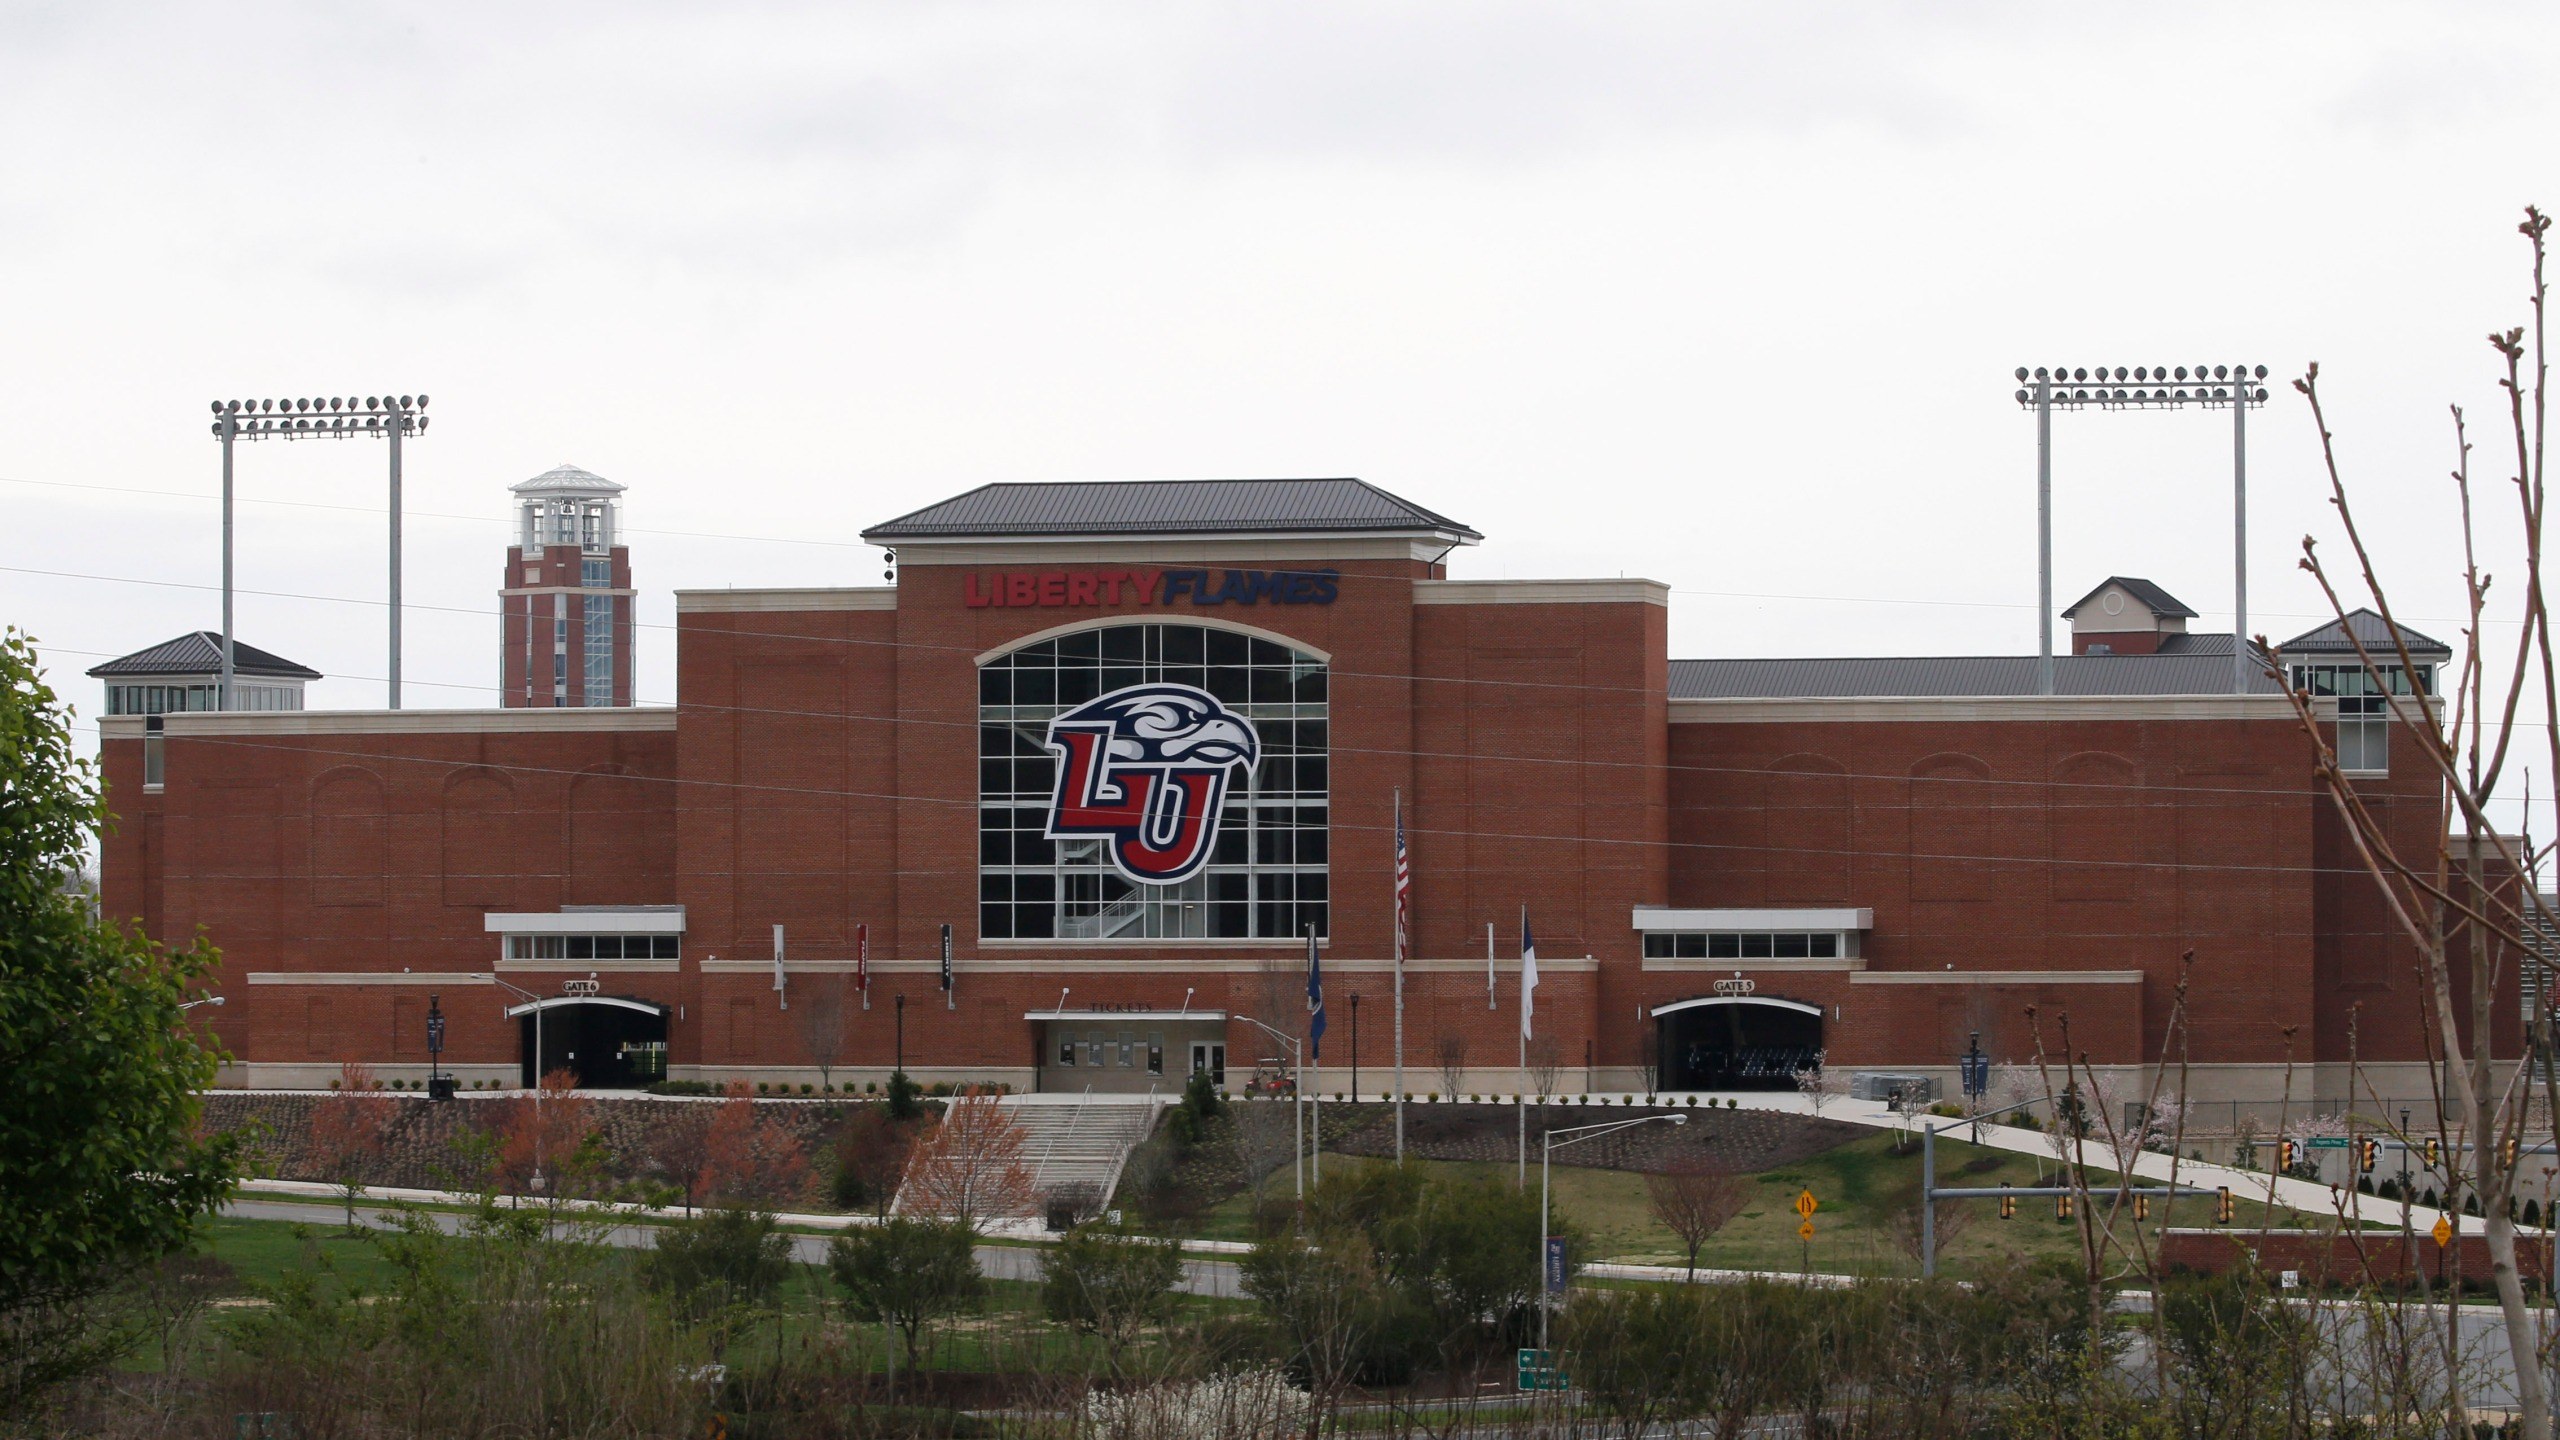 Liberty University's football stadium was empty as students were welcomed back to the university's campus, Tuesday March 24 , 2020, in Lynchburg, Va. Officials in Lynchburg, said Tuesday they were fielding complaints and concerns about the hundreds of students that have returned from their spring break to Liberty University, where President Jerry Falwell Jr. has welcomed them back amid the coronavirus pandemic. (AP Photo/Steve Helber)